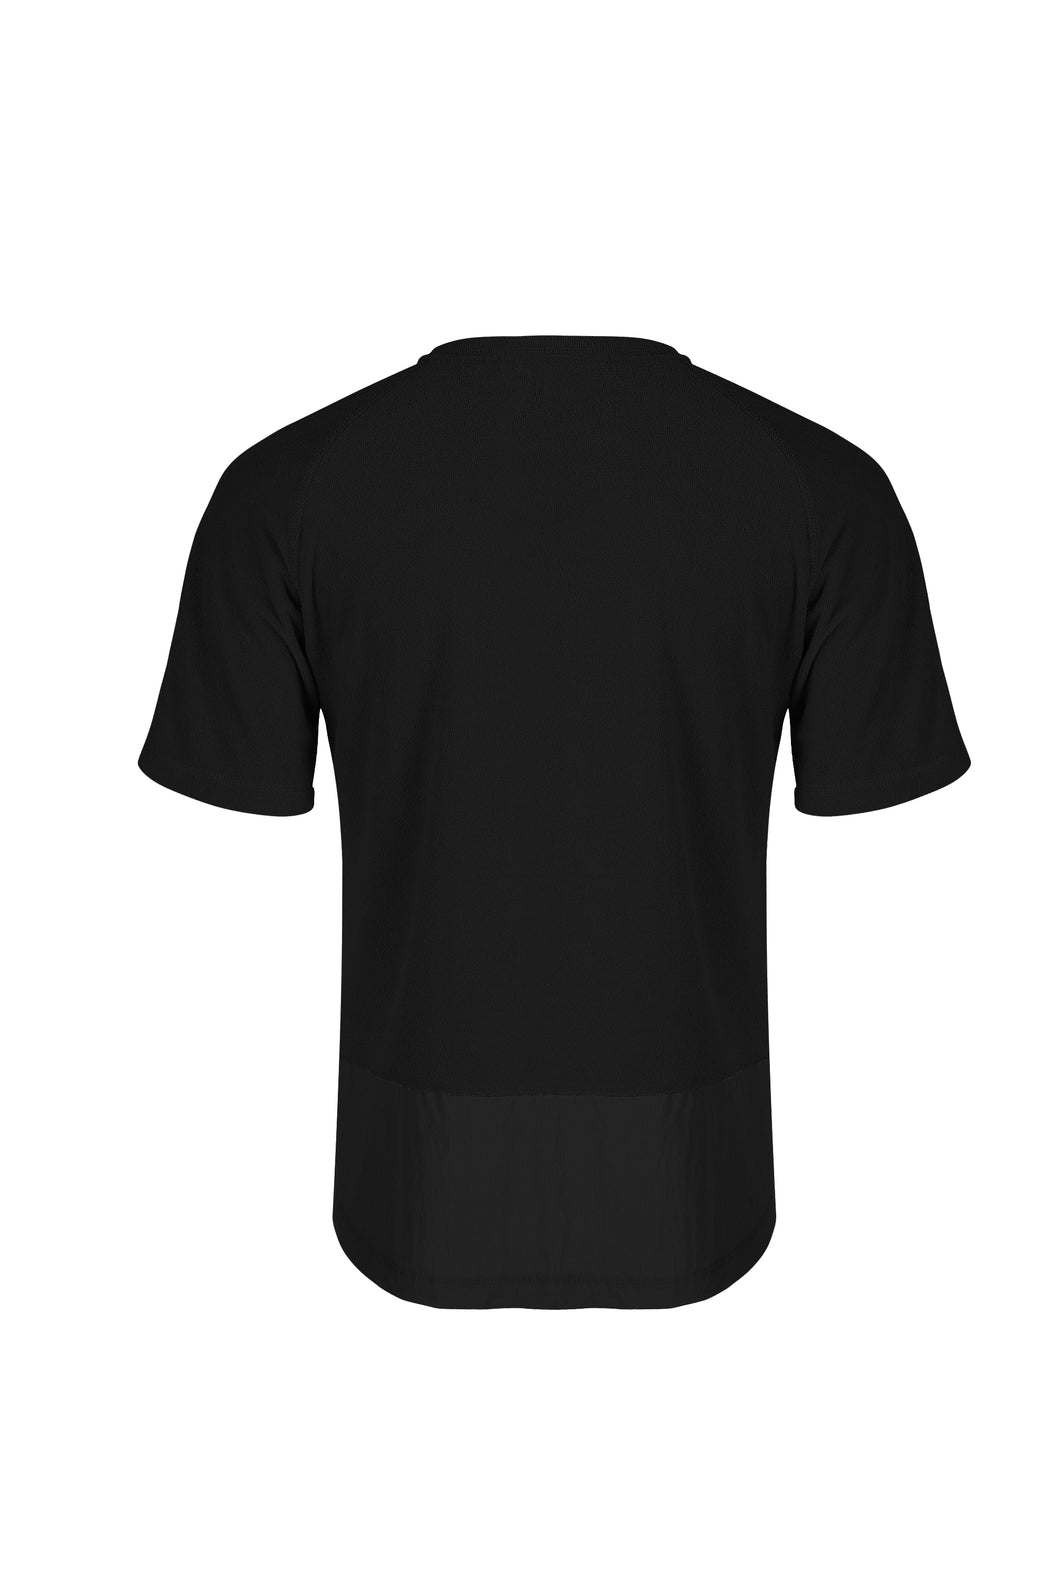 Back View of Men Pocket Blocked T-shirt, made with Supima Cotton in Black